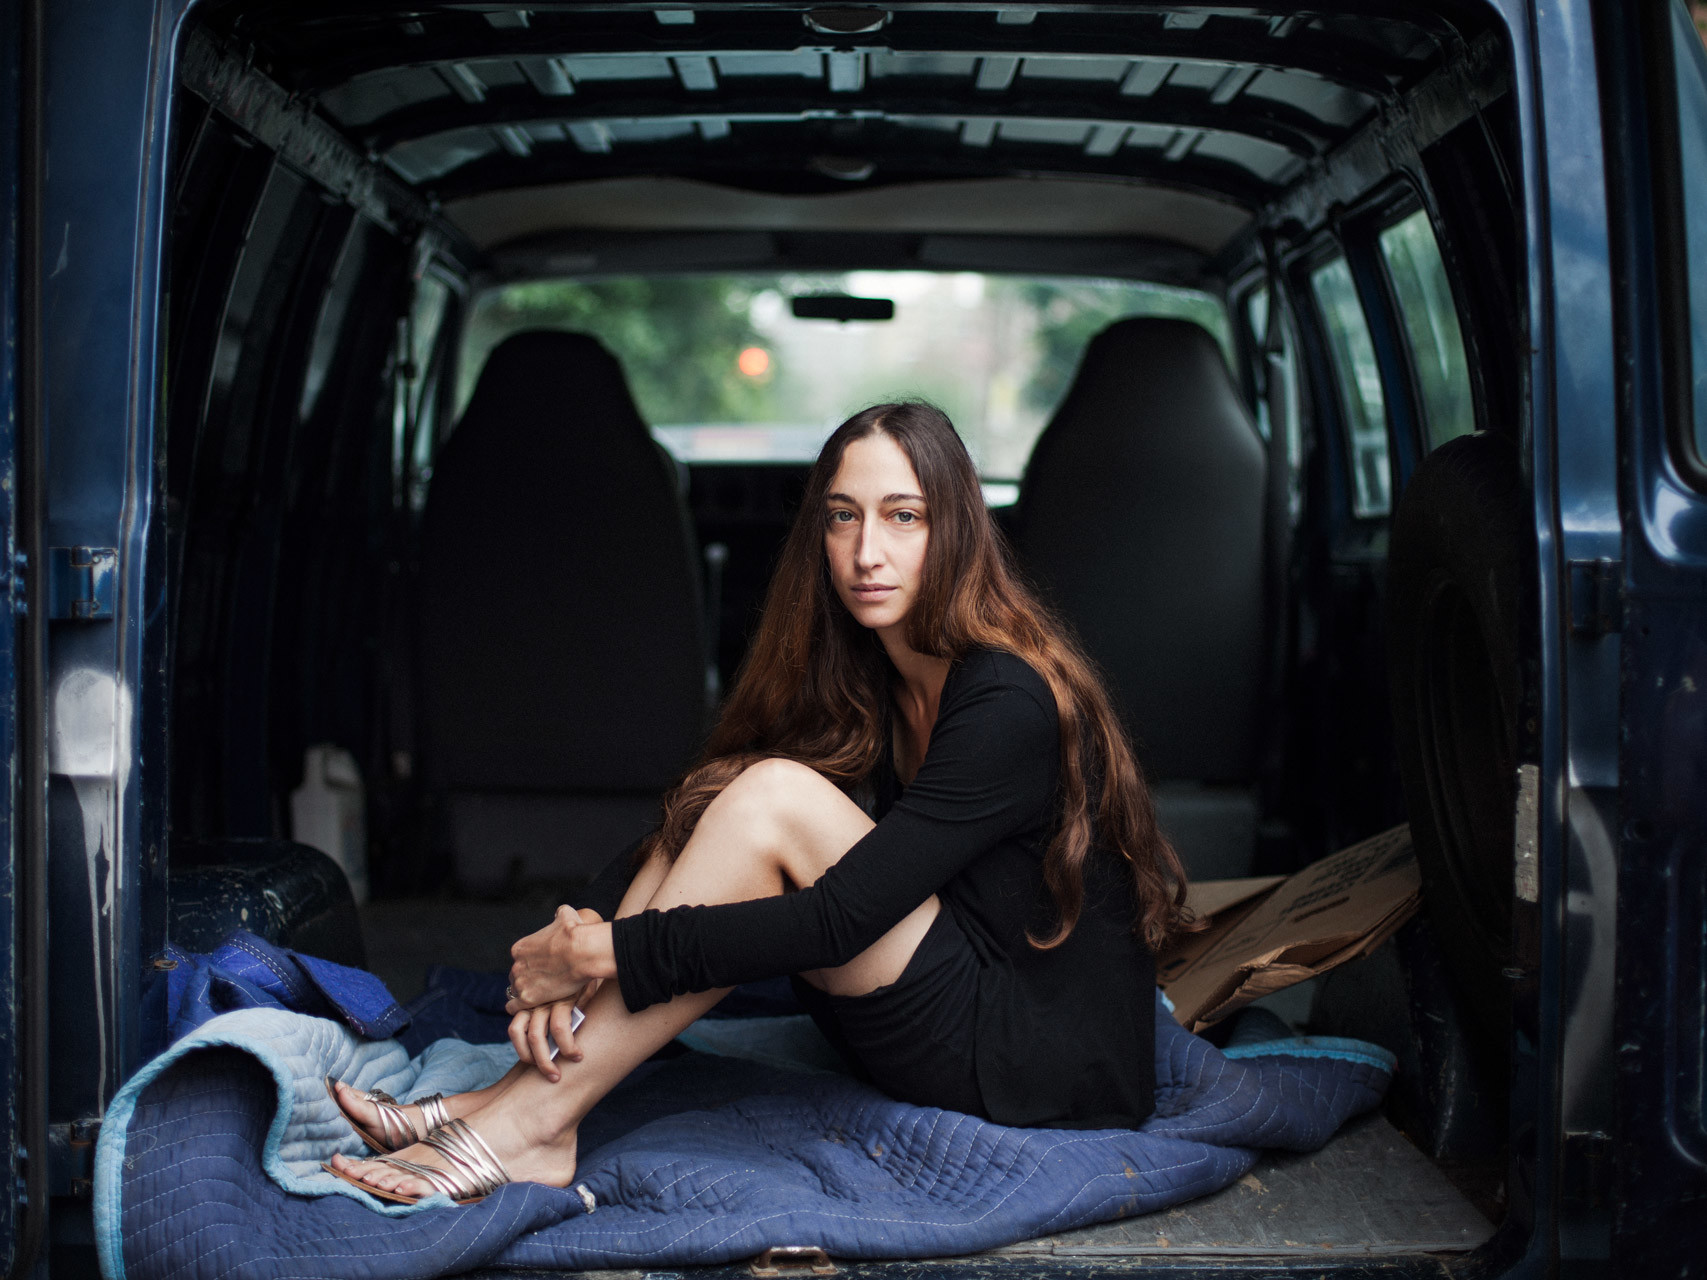 timo-stammberger-photography-new-york-city-manhattan-portrait-woman-long-hair-van